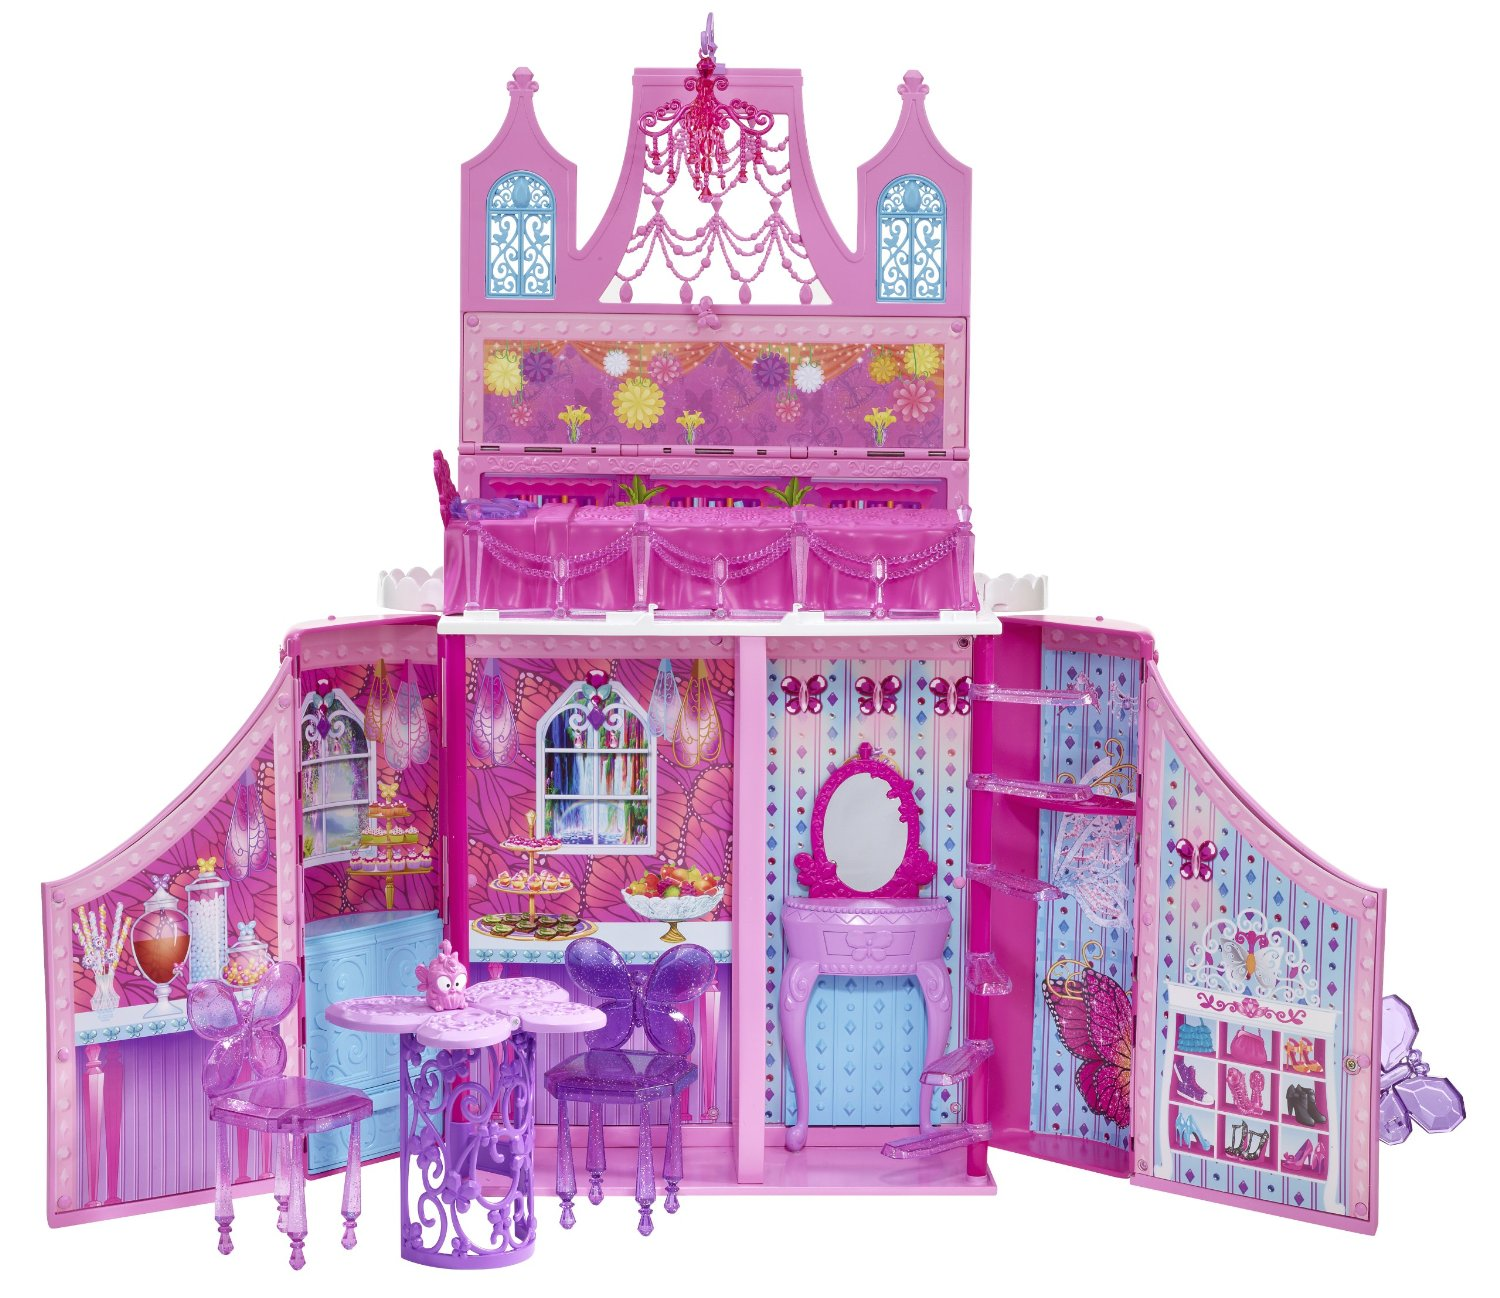 Buy Barbie Mariposa And The Fairy Princess Castle Playset With Mini